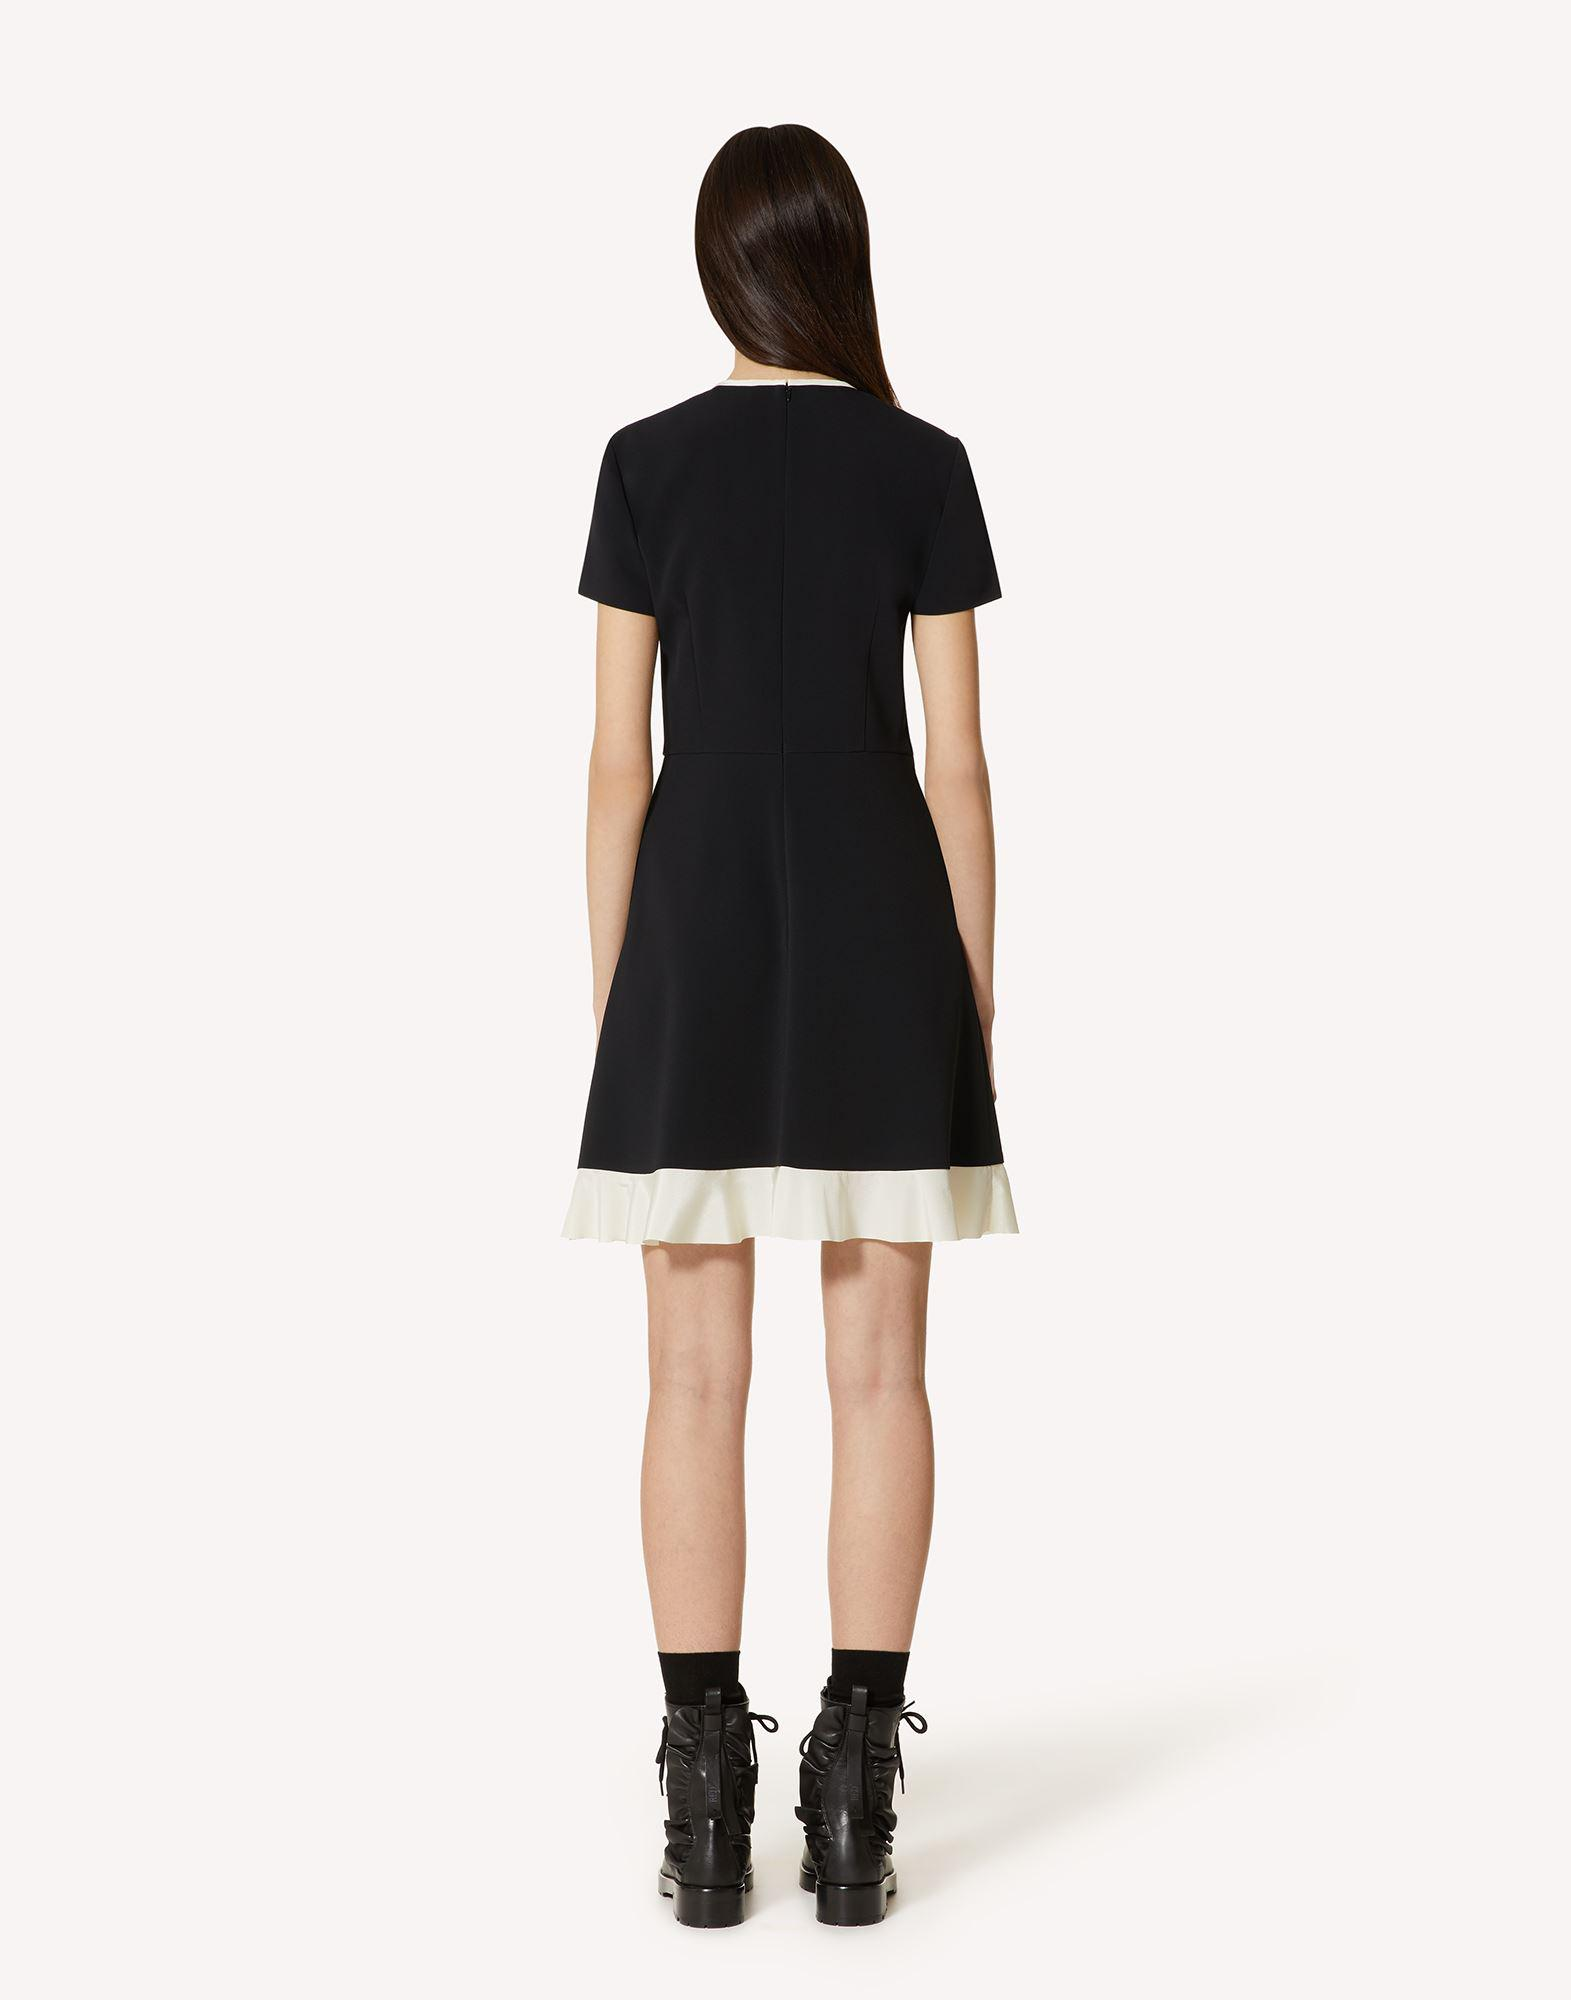 STRETCH FRISOTTINE DRESS WITH BOW DETAILS 1